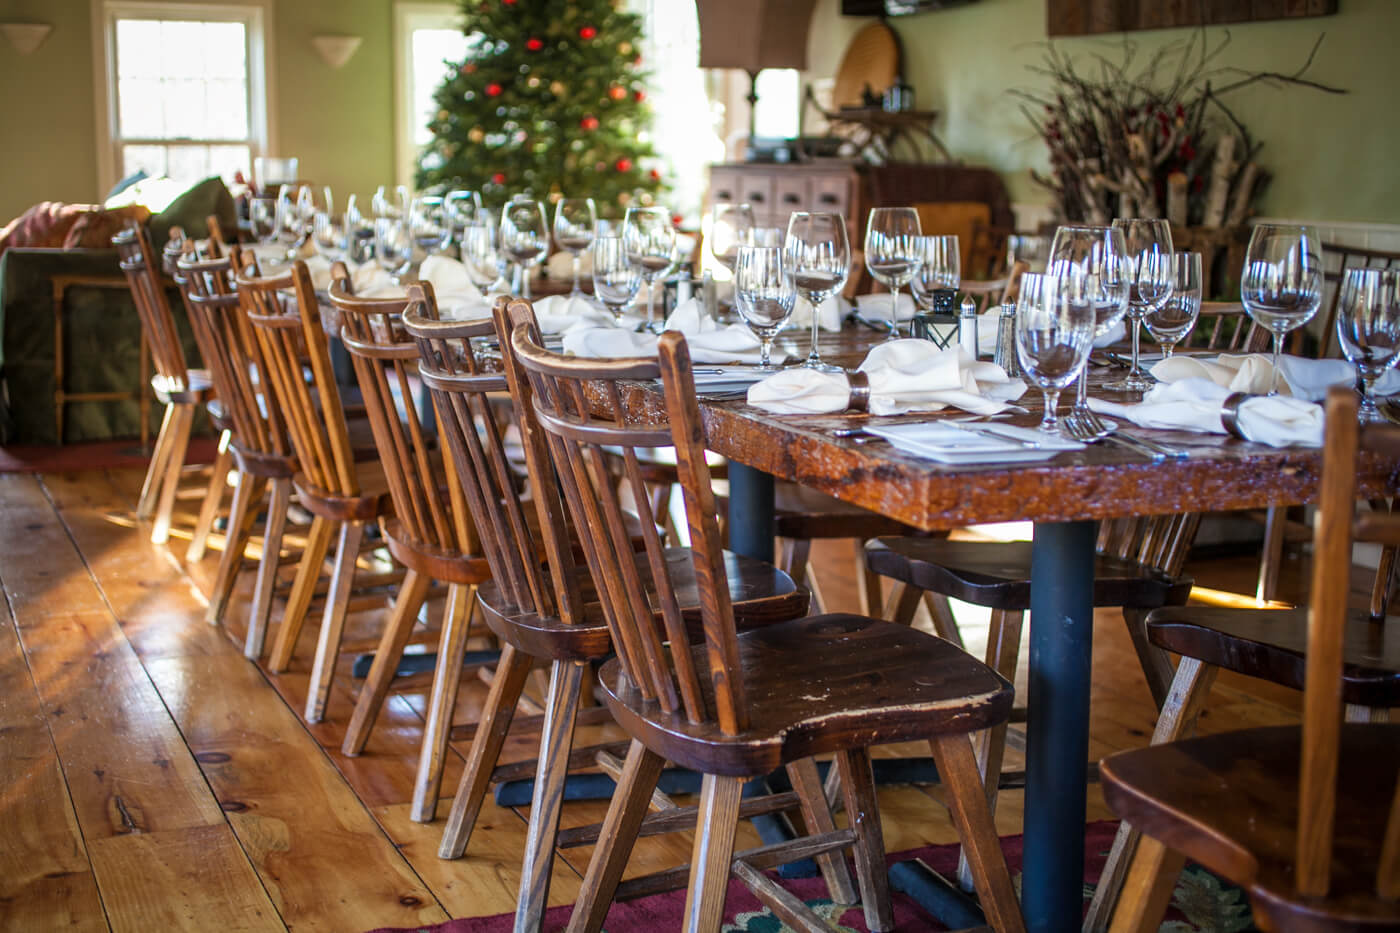 Banquet tables with wine dinner settings. Decorated Christmas tree in the background.